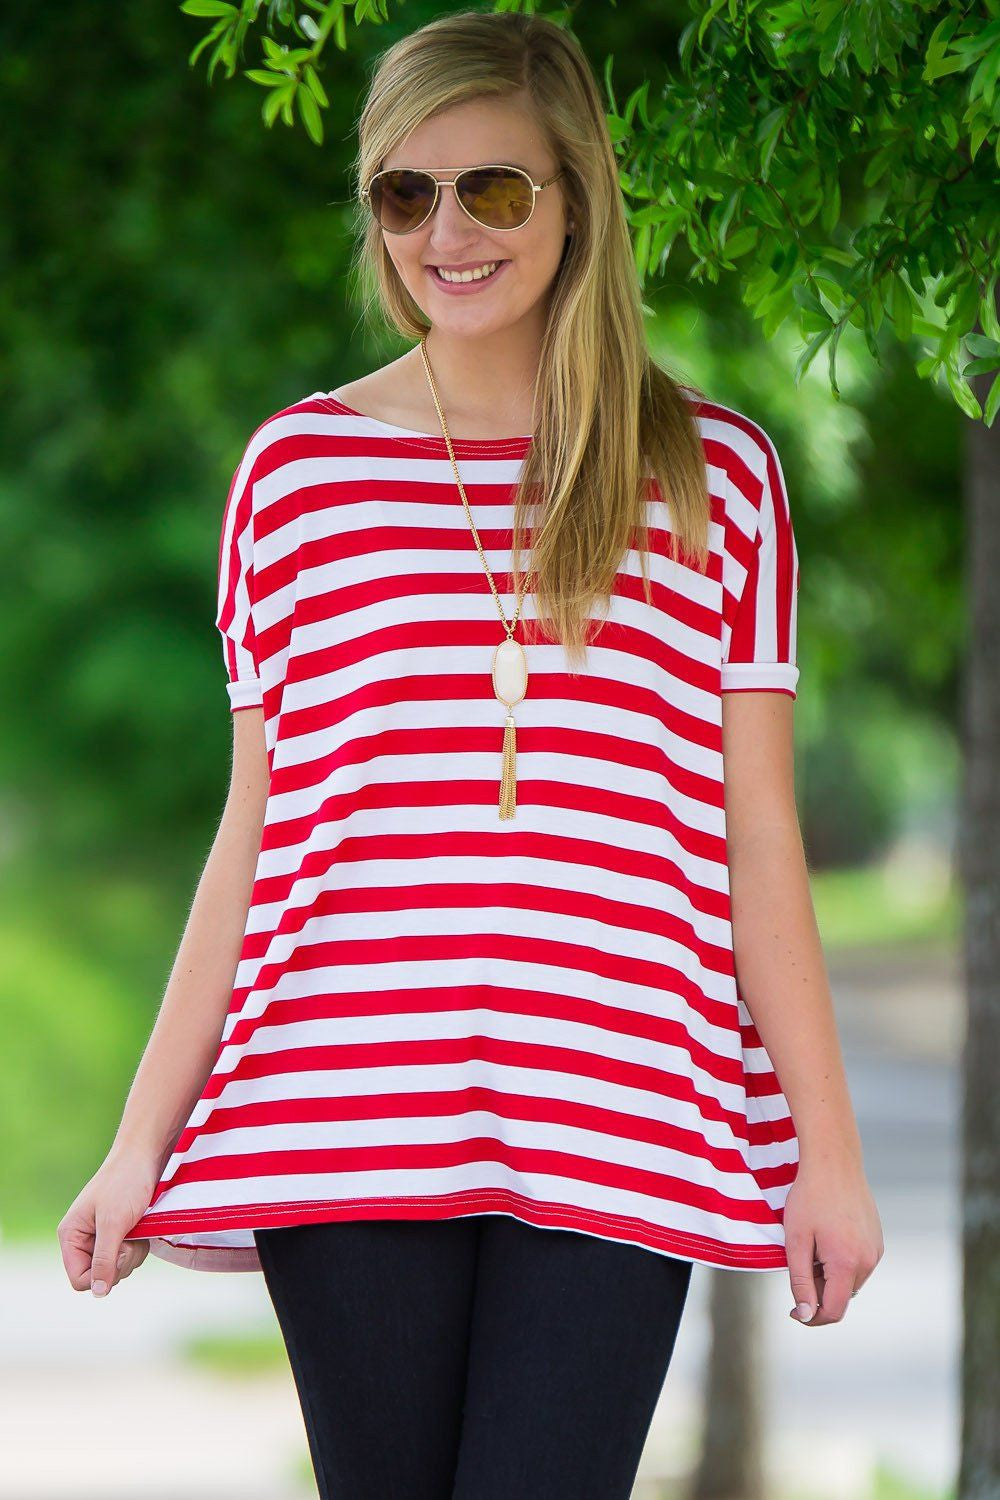 Short Sleeve Thick Stripe Piko Top - Red/White - Piko Clothing - 1